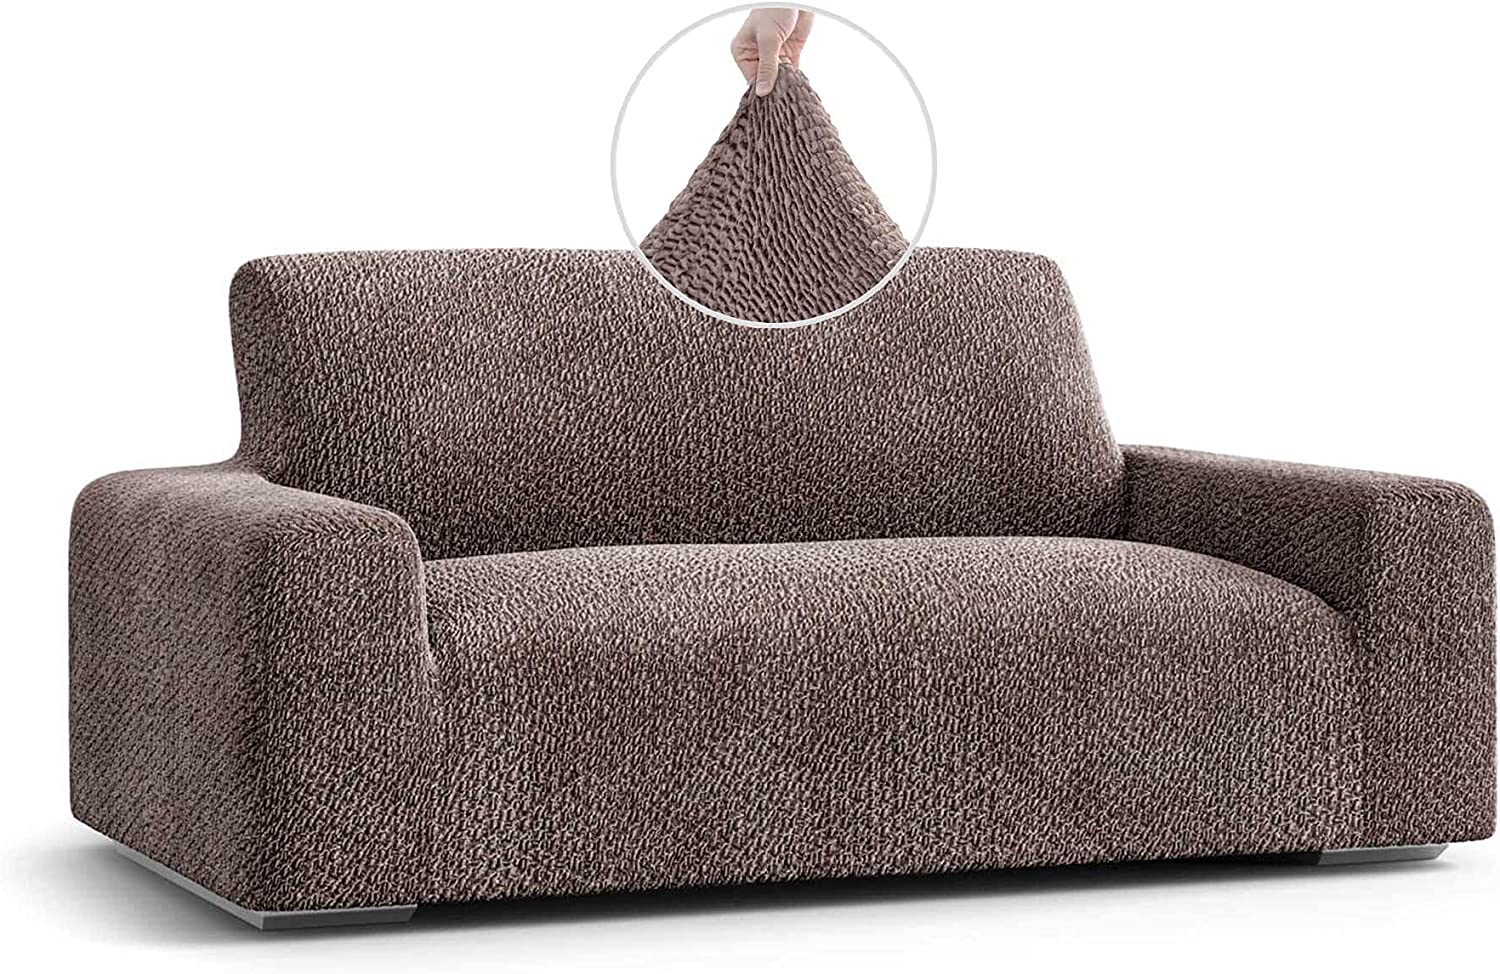 Loveseat Cover - Weekly Ranking TOP18 update Slipcovers Covers Couch S